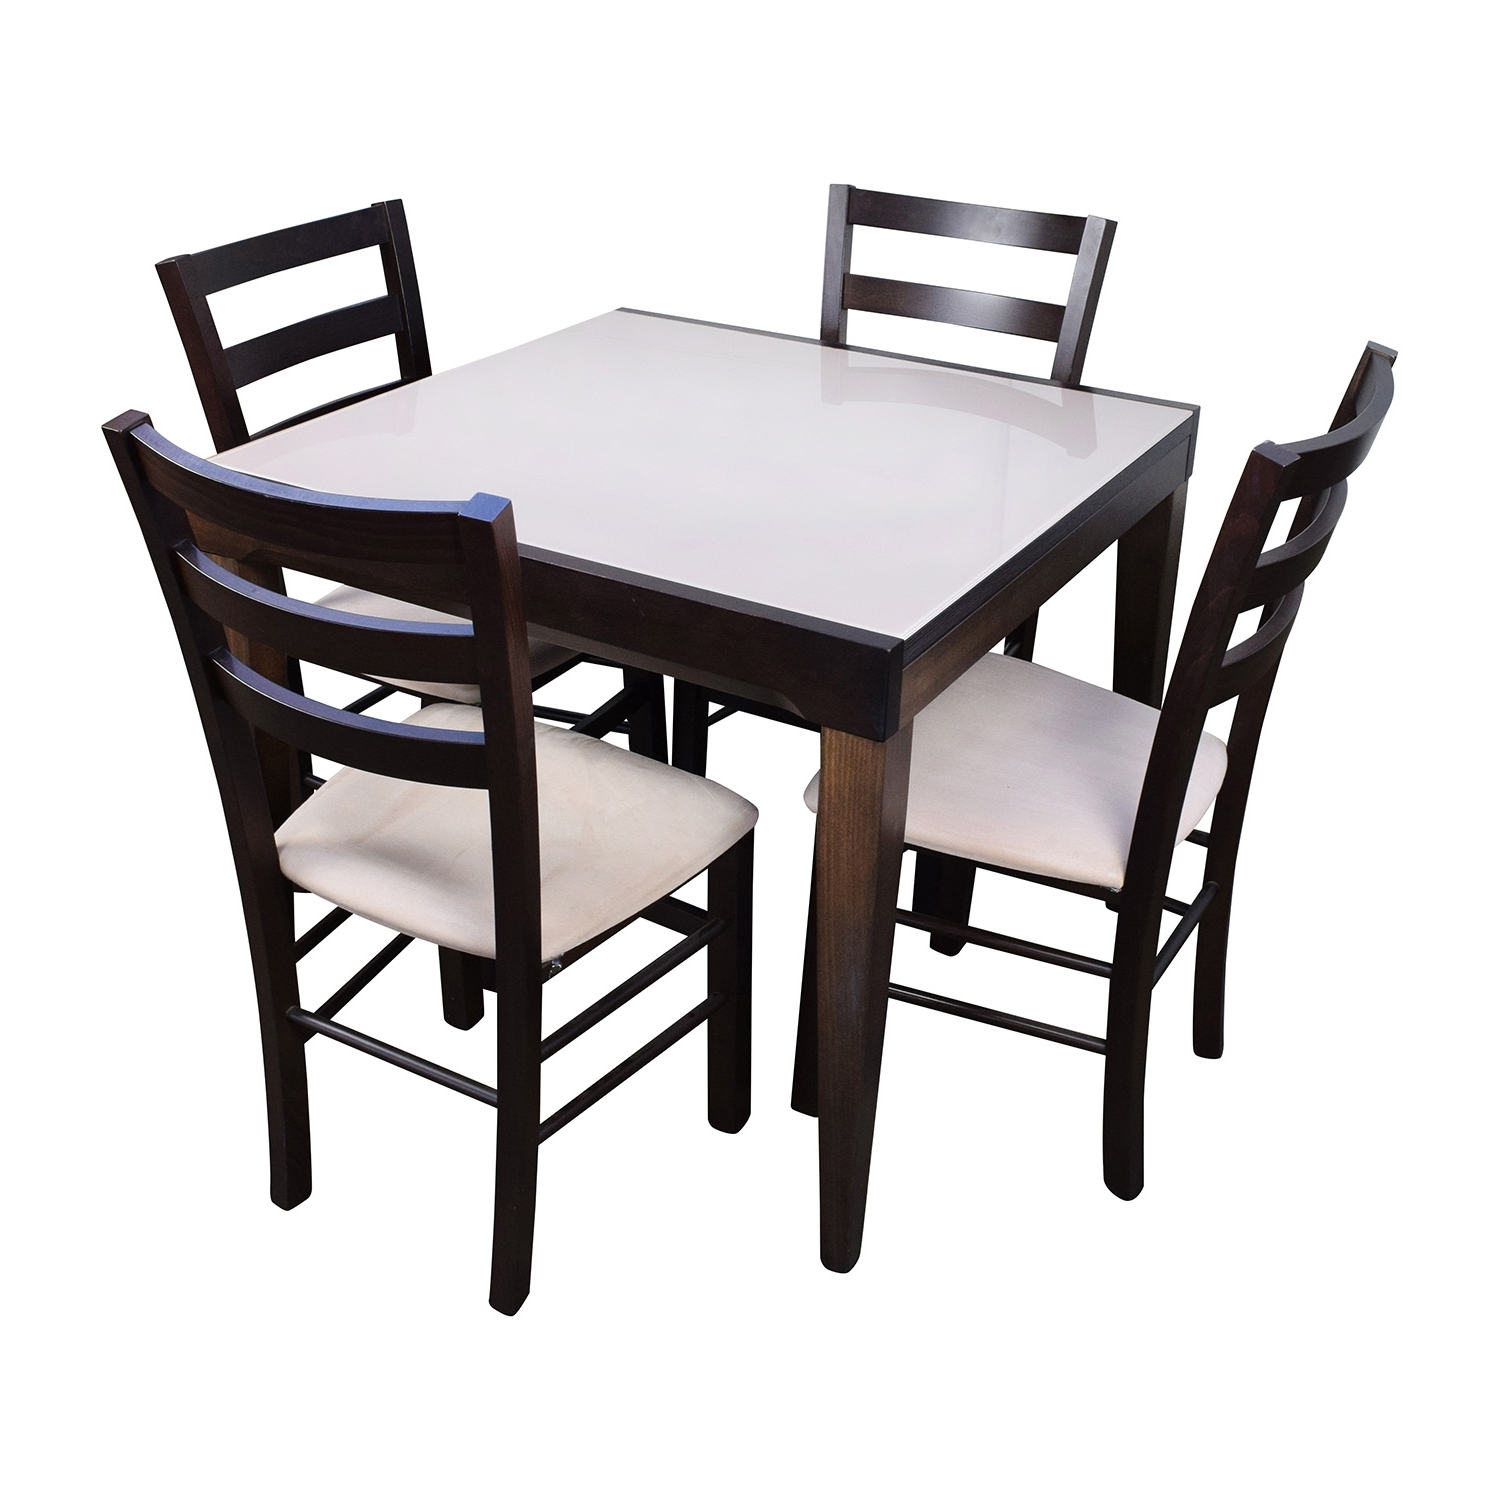 [%82% Off – Macy's Macy's Cafe Latte Five Piece Extendable Dining Set For Current Macie 5 Piece Round Dining Sets|Macie 5 Piece Round Dining Sets With Regard To Most Current 82% Off – Macy's Macy's Cafe Latte Five Piece Extendable Dining Set|Most Recent Macie 5 Piece Round Dining Sets With Regard To 82% Off – Macy's Macy's Cafe Latte Five Piece Extendable Dining Set|Recent 82% Off – Macy's Macy's Cafe Latte Five Piece Extendable Dining Set Intended For Macie 5 Piece Round Dining Sets%] (View 15 of 25)